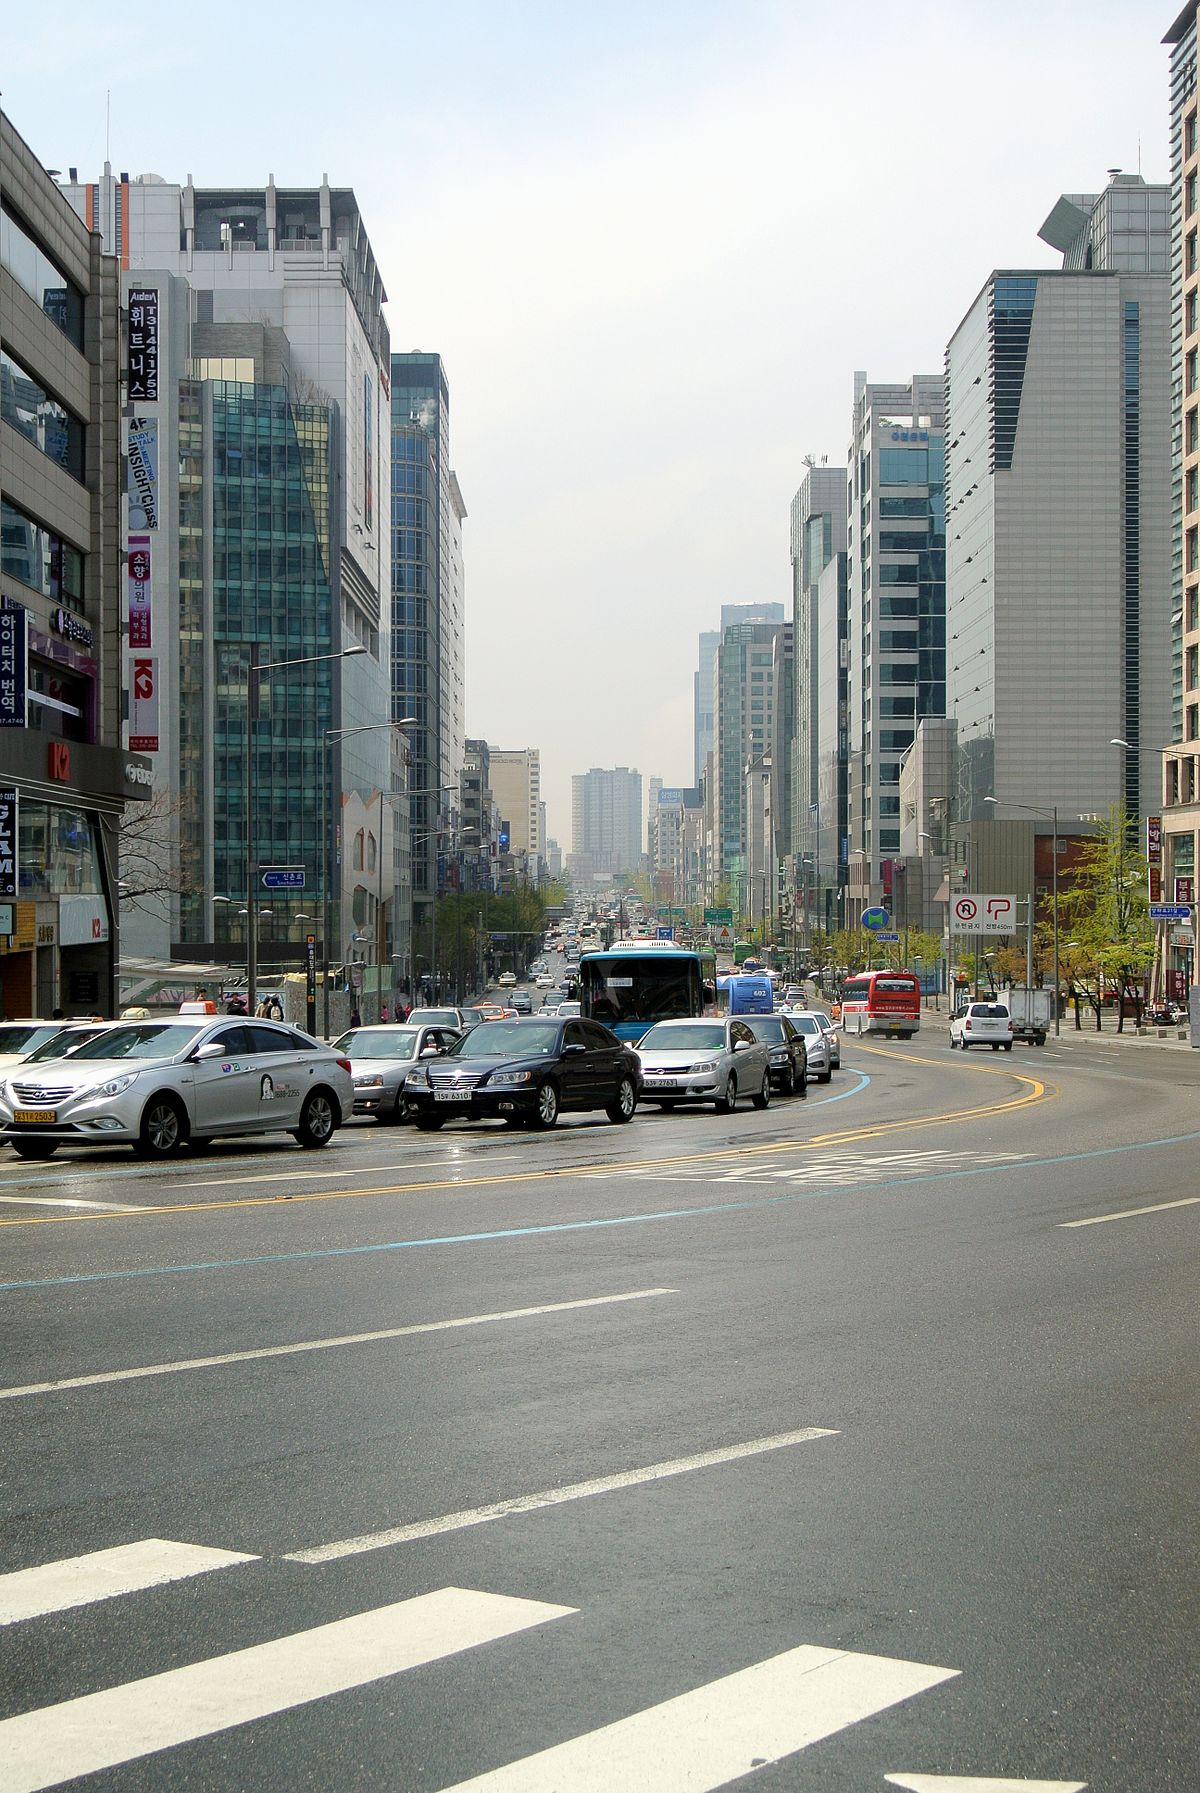 Seoul In Black And White: Mapo District